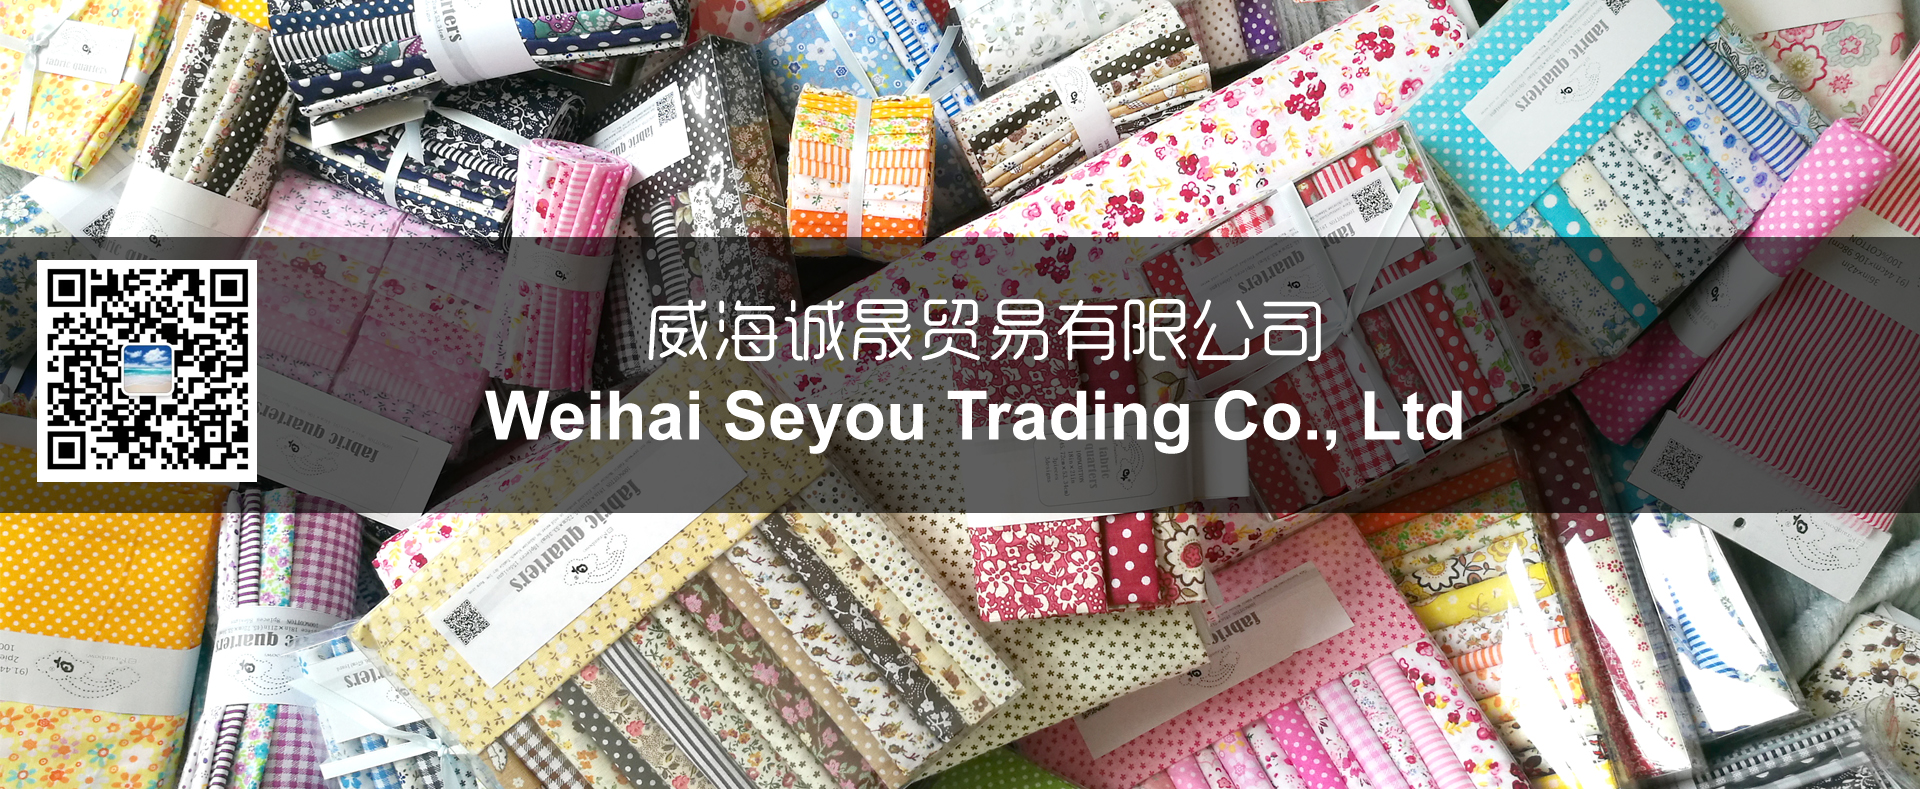 WEIHAI SEYOU TRADING CO.,LTD